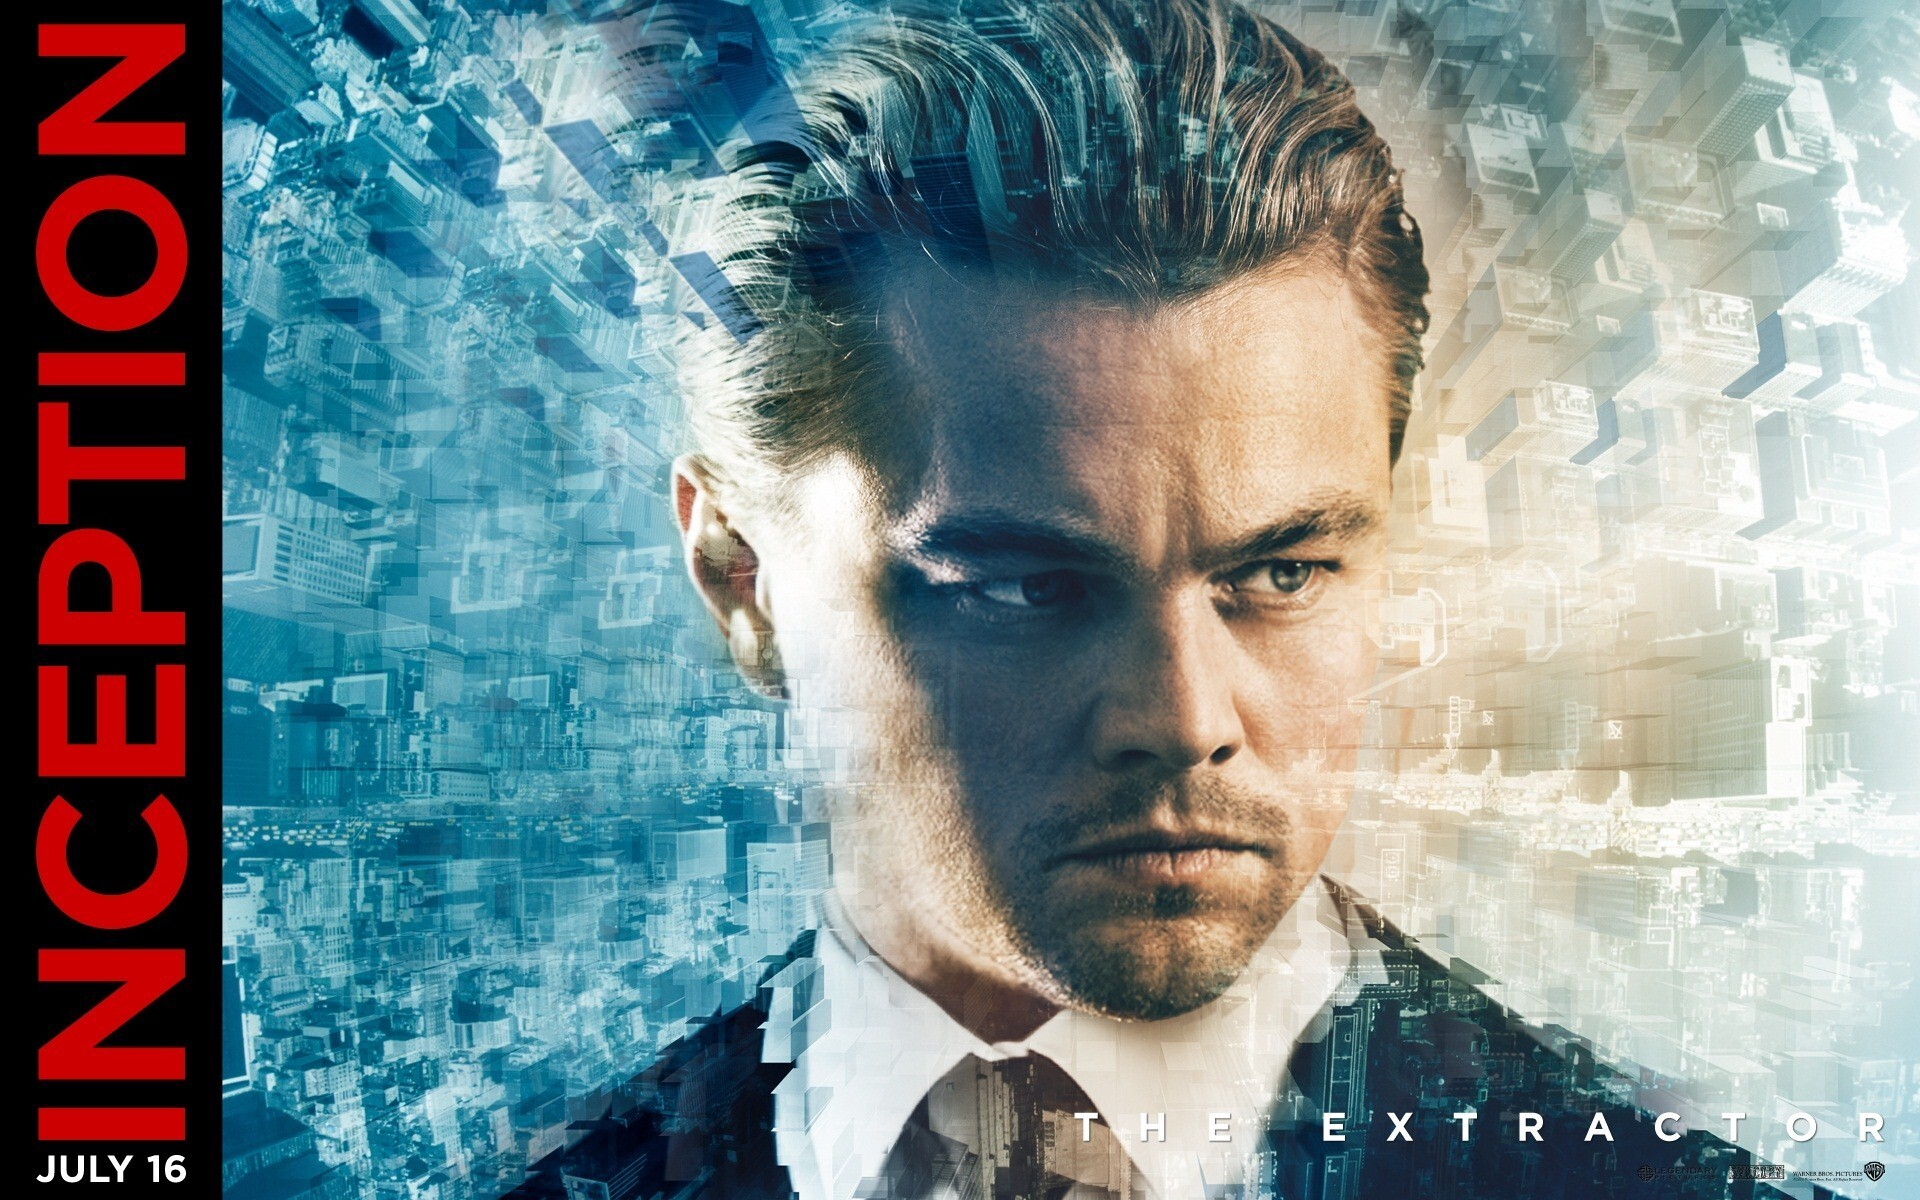 leonardo dicaprio inception movie cover image | hd wallpapers